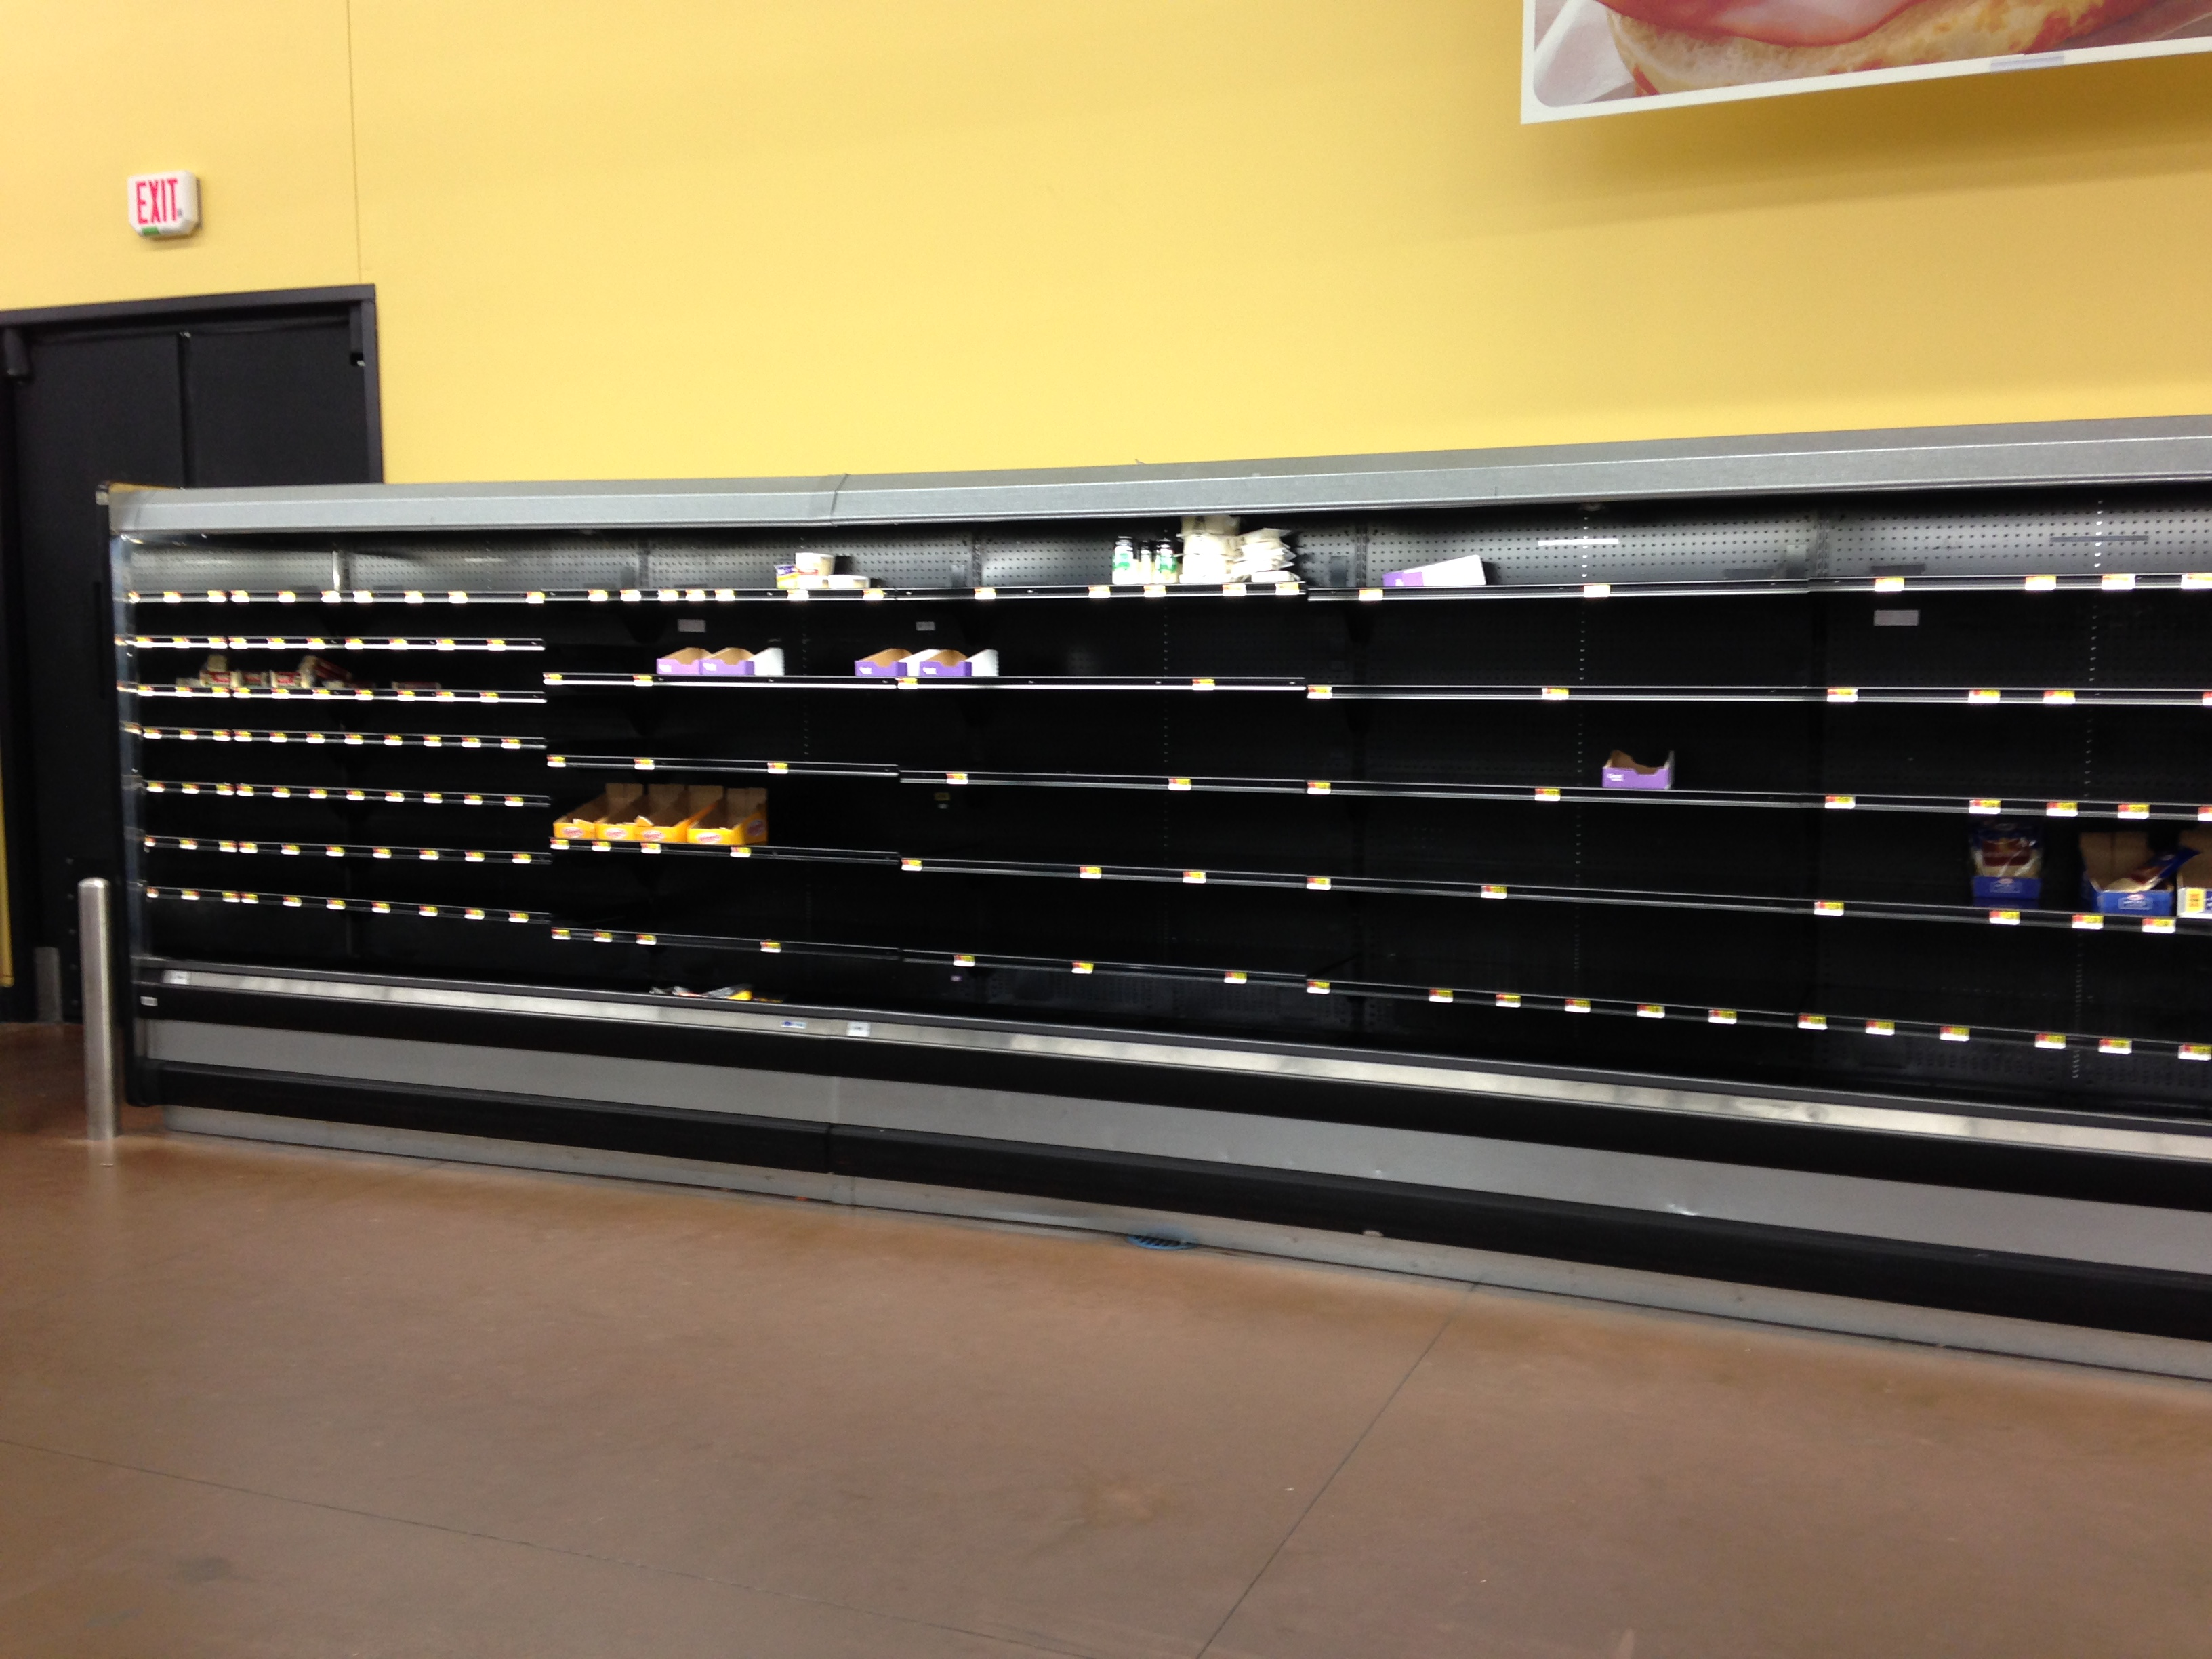 picture of empty cheese shelf.